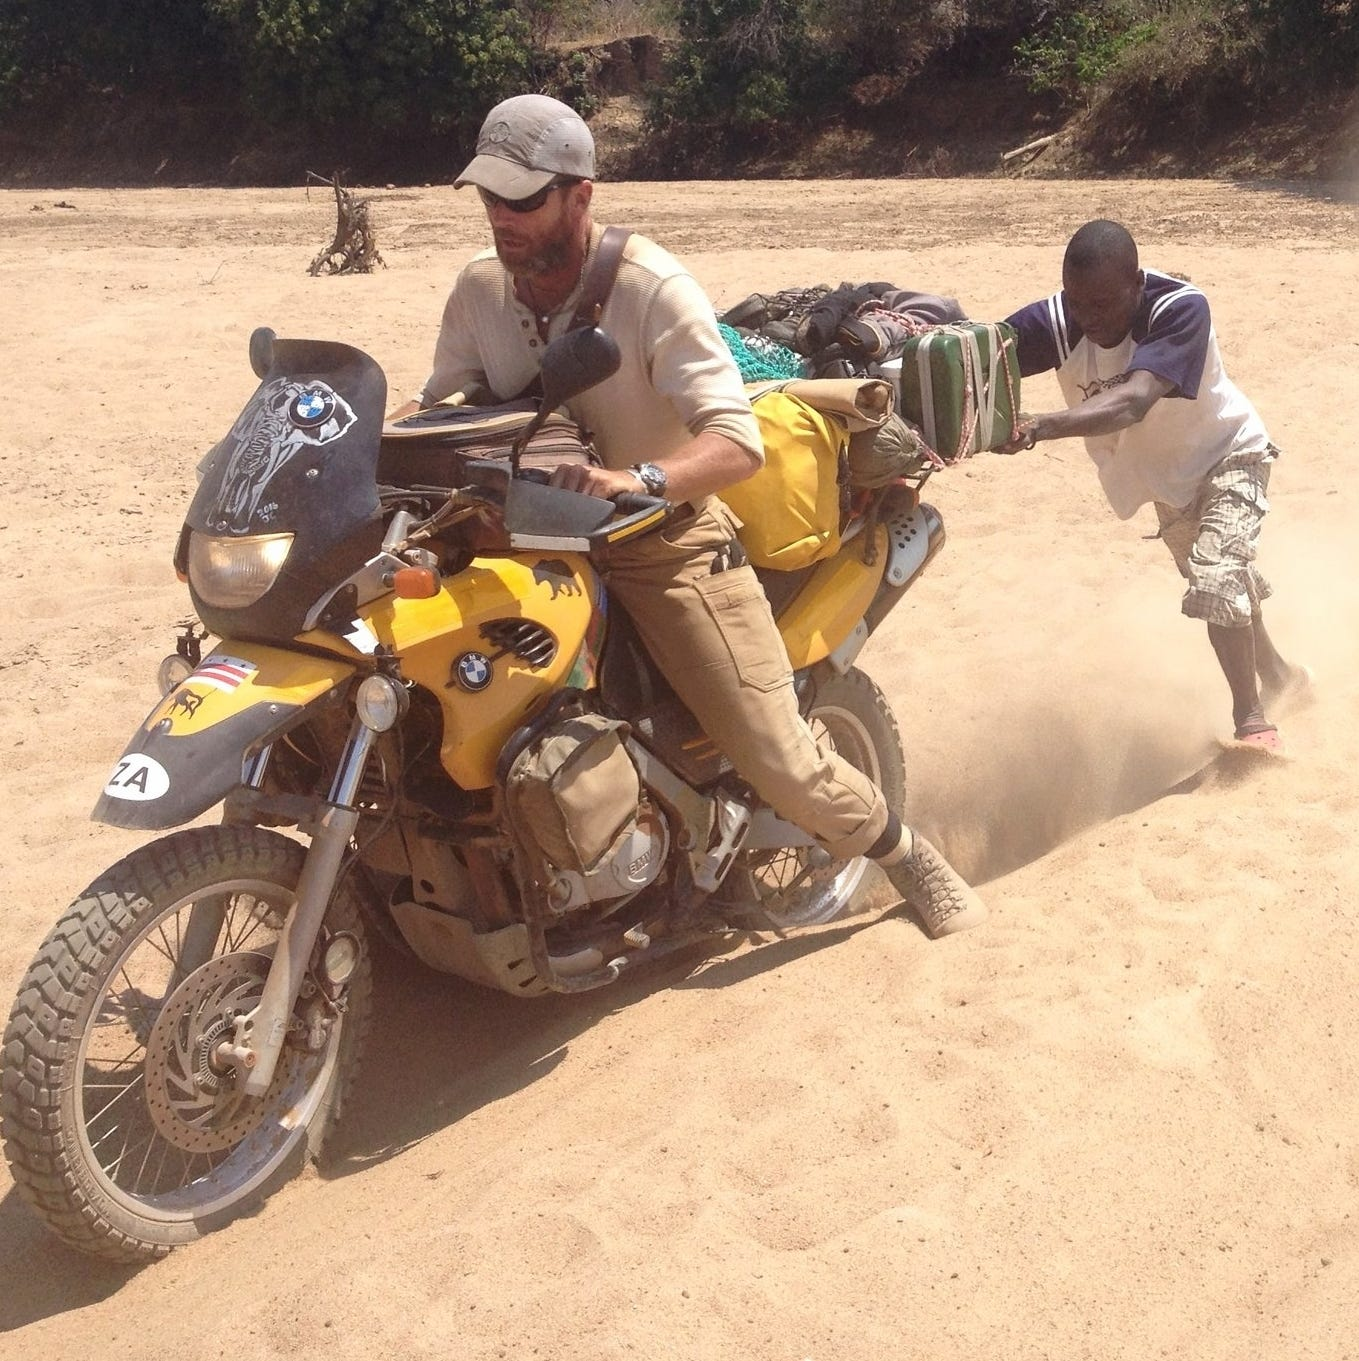 Marquette grad and husband offer motorcycle therapy trips in Africa